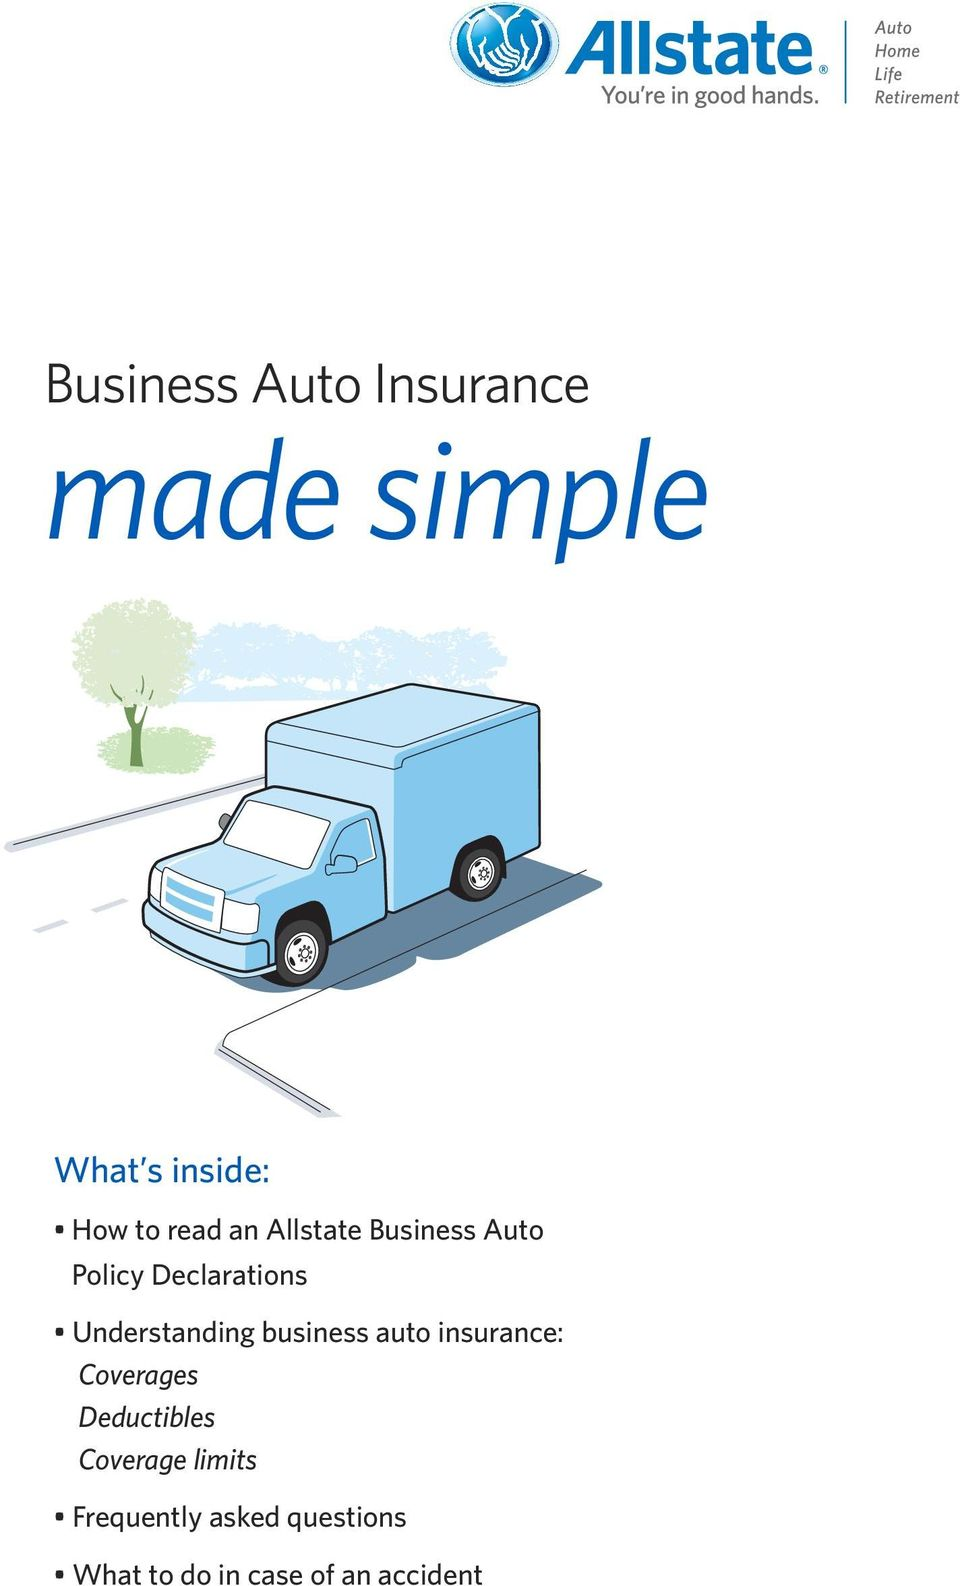 Understanding business auto insurance: Deductibles